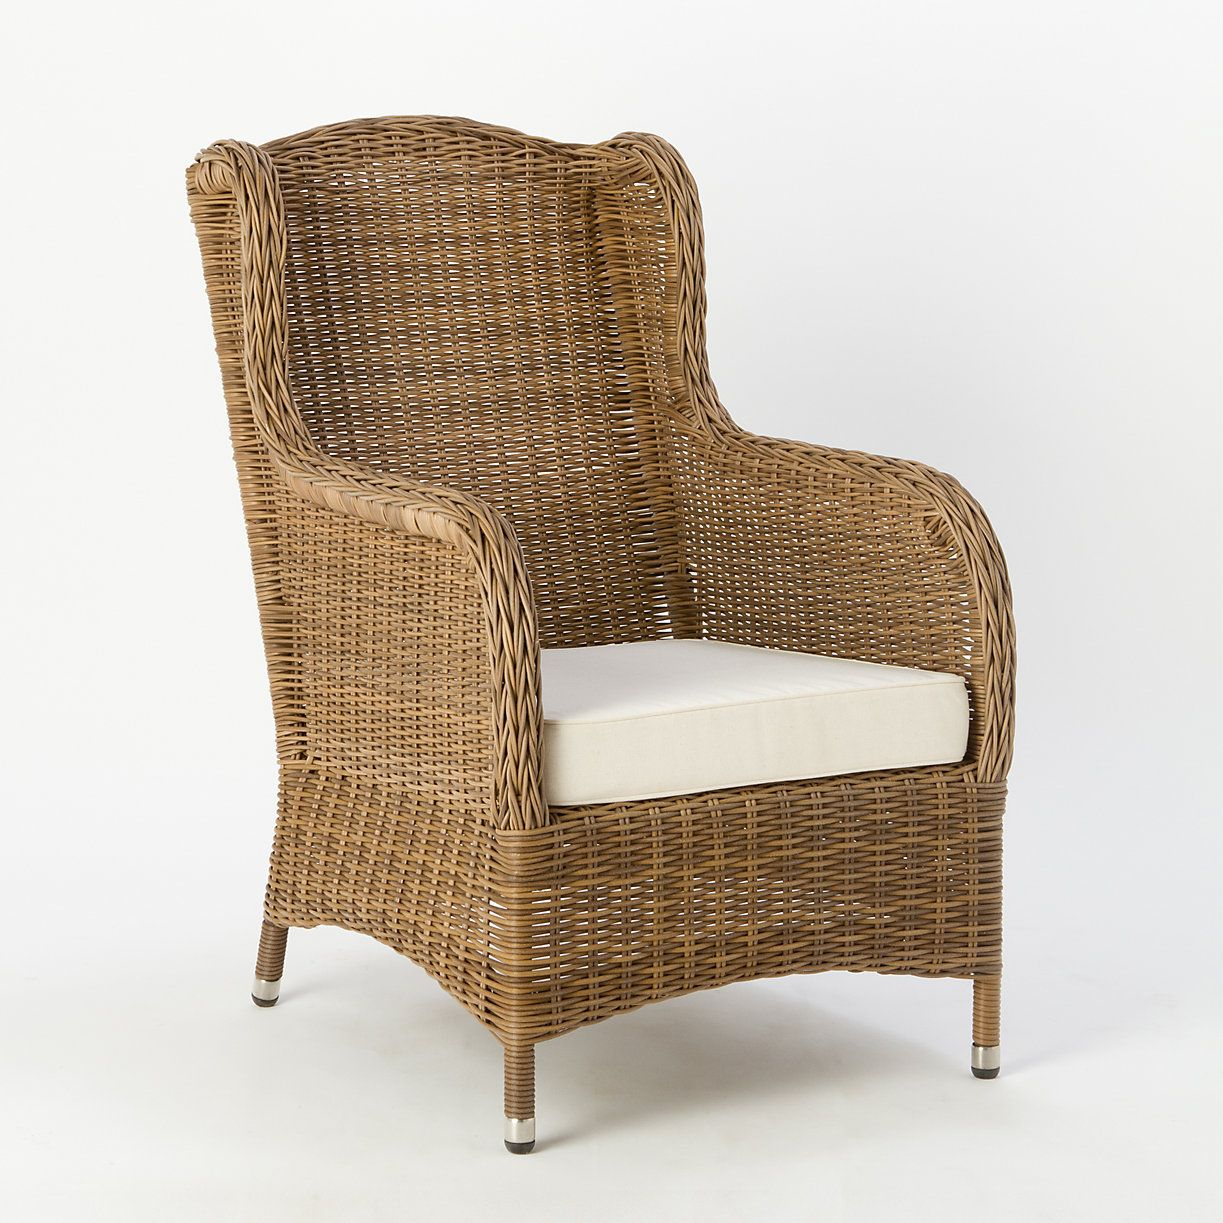 Awesome Add Classic Style To The Garden With This Wingback Seat, Each One Made From  Durable, All Weather Wicker And Topped With Quick Drying Cushions.